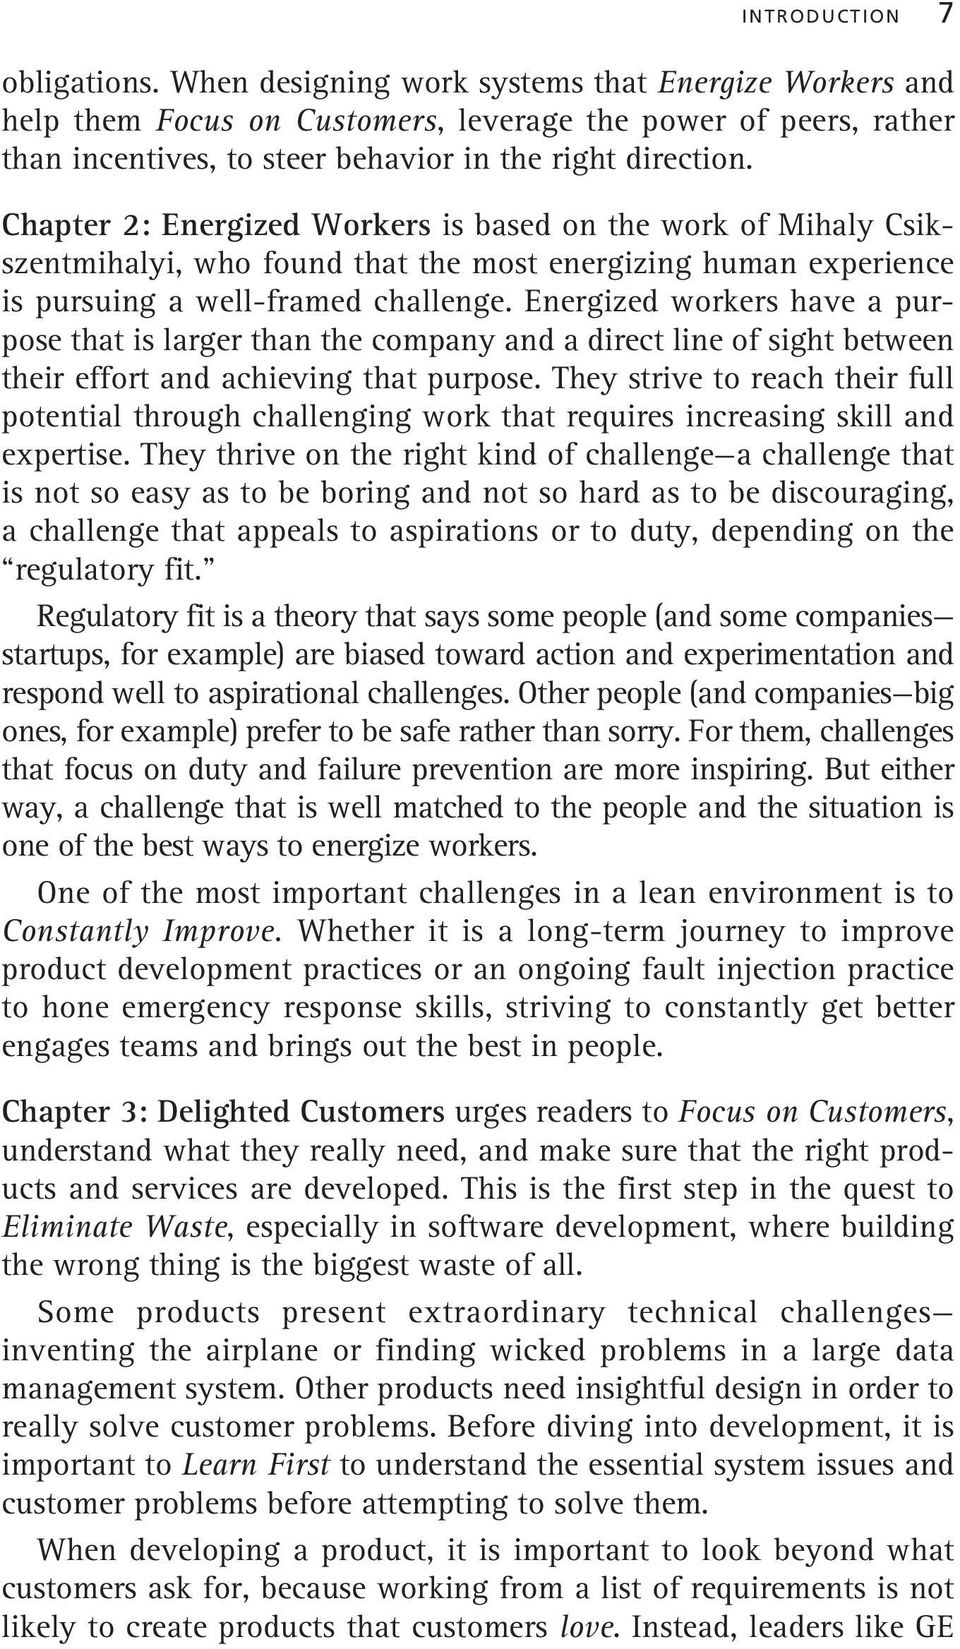 Chapter 2: Energized Workers is based on the work of Mihaly Csikszentmihalyi, who found that the most energizing human experience is pursuing a well-framed challenge.